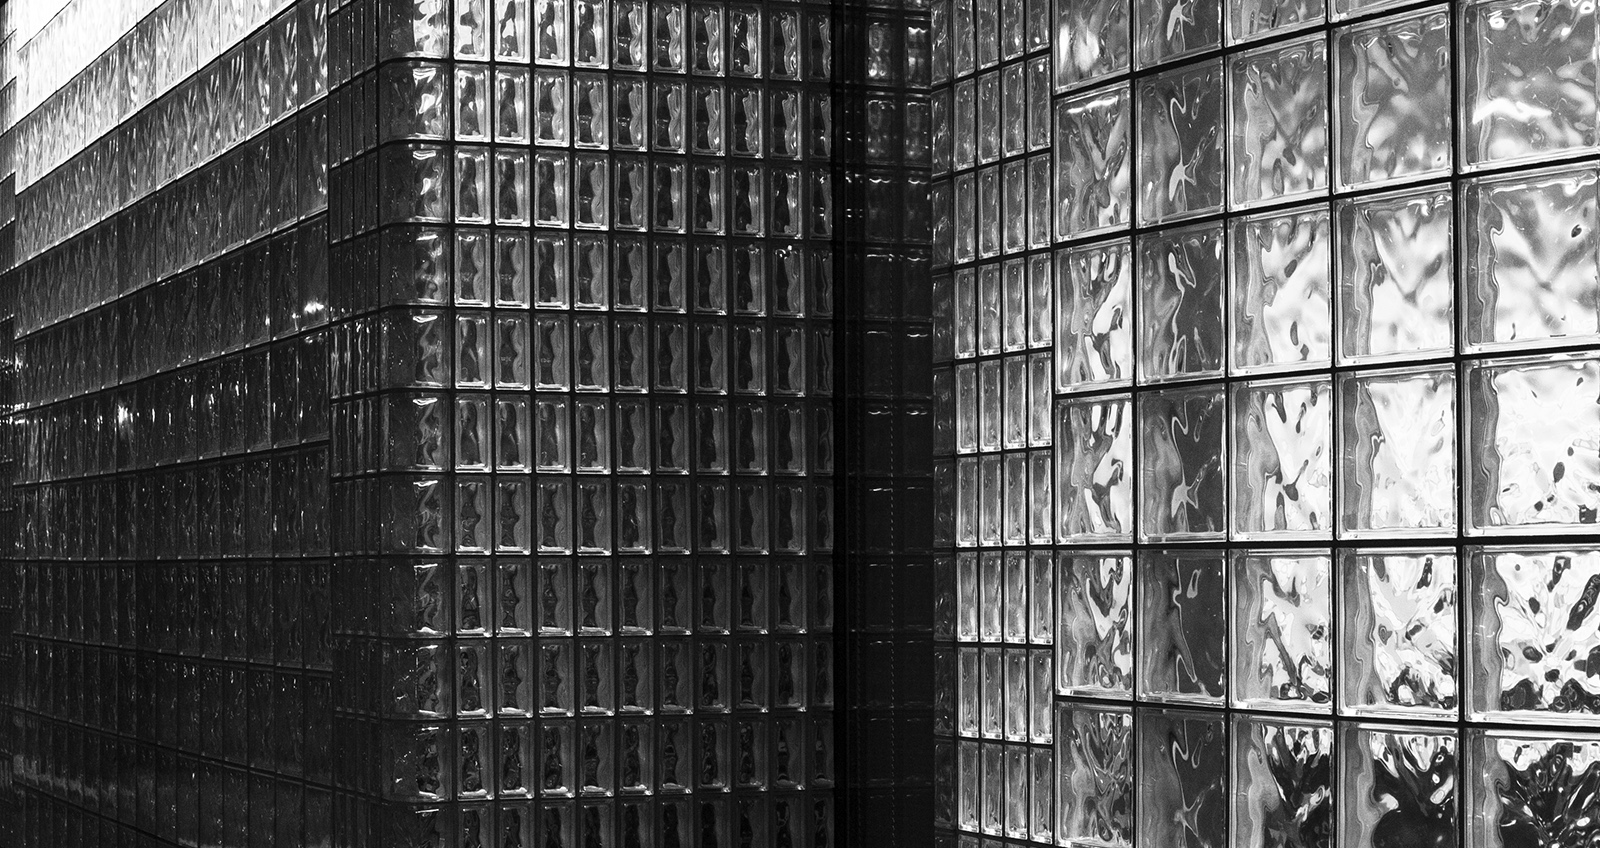 20140313 Grayscale Glass Block Wall Minimal Aesthetic